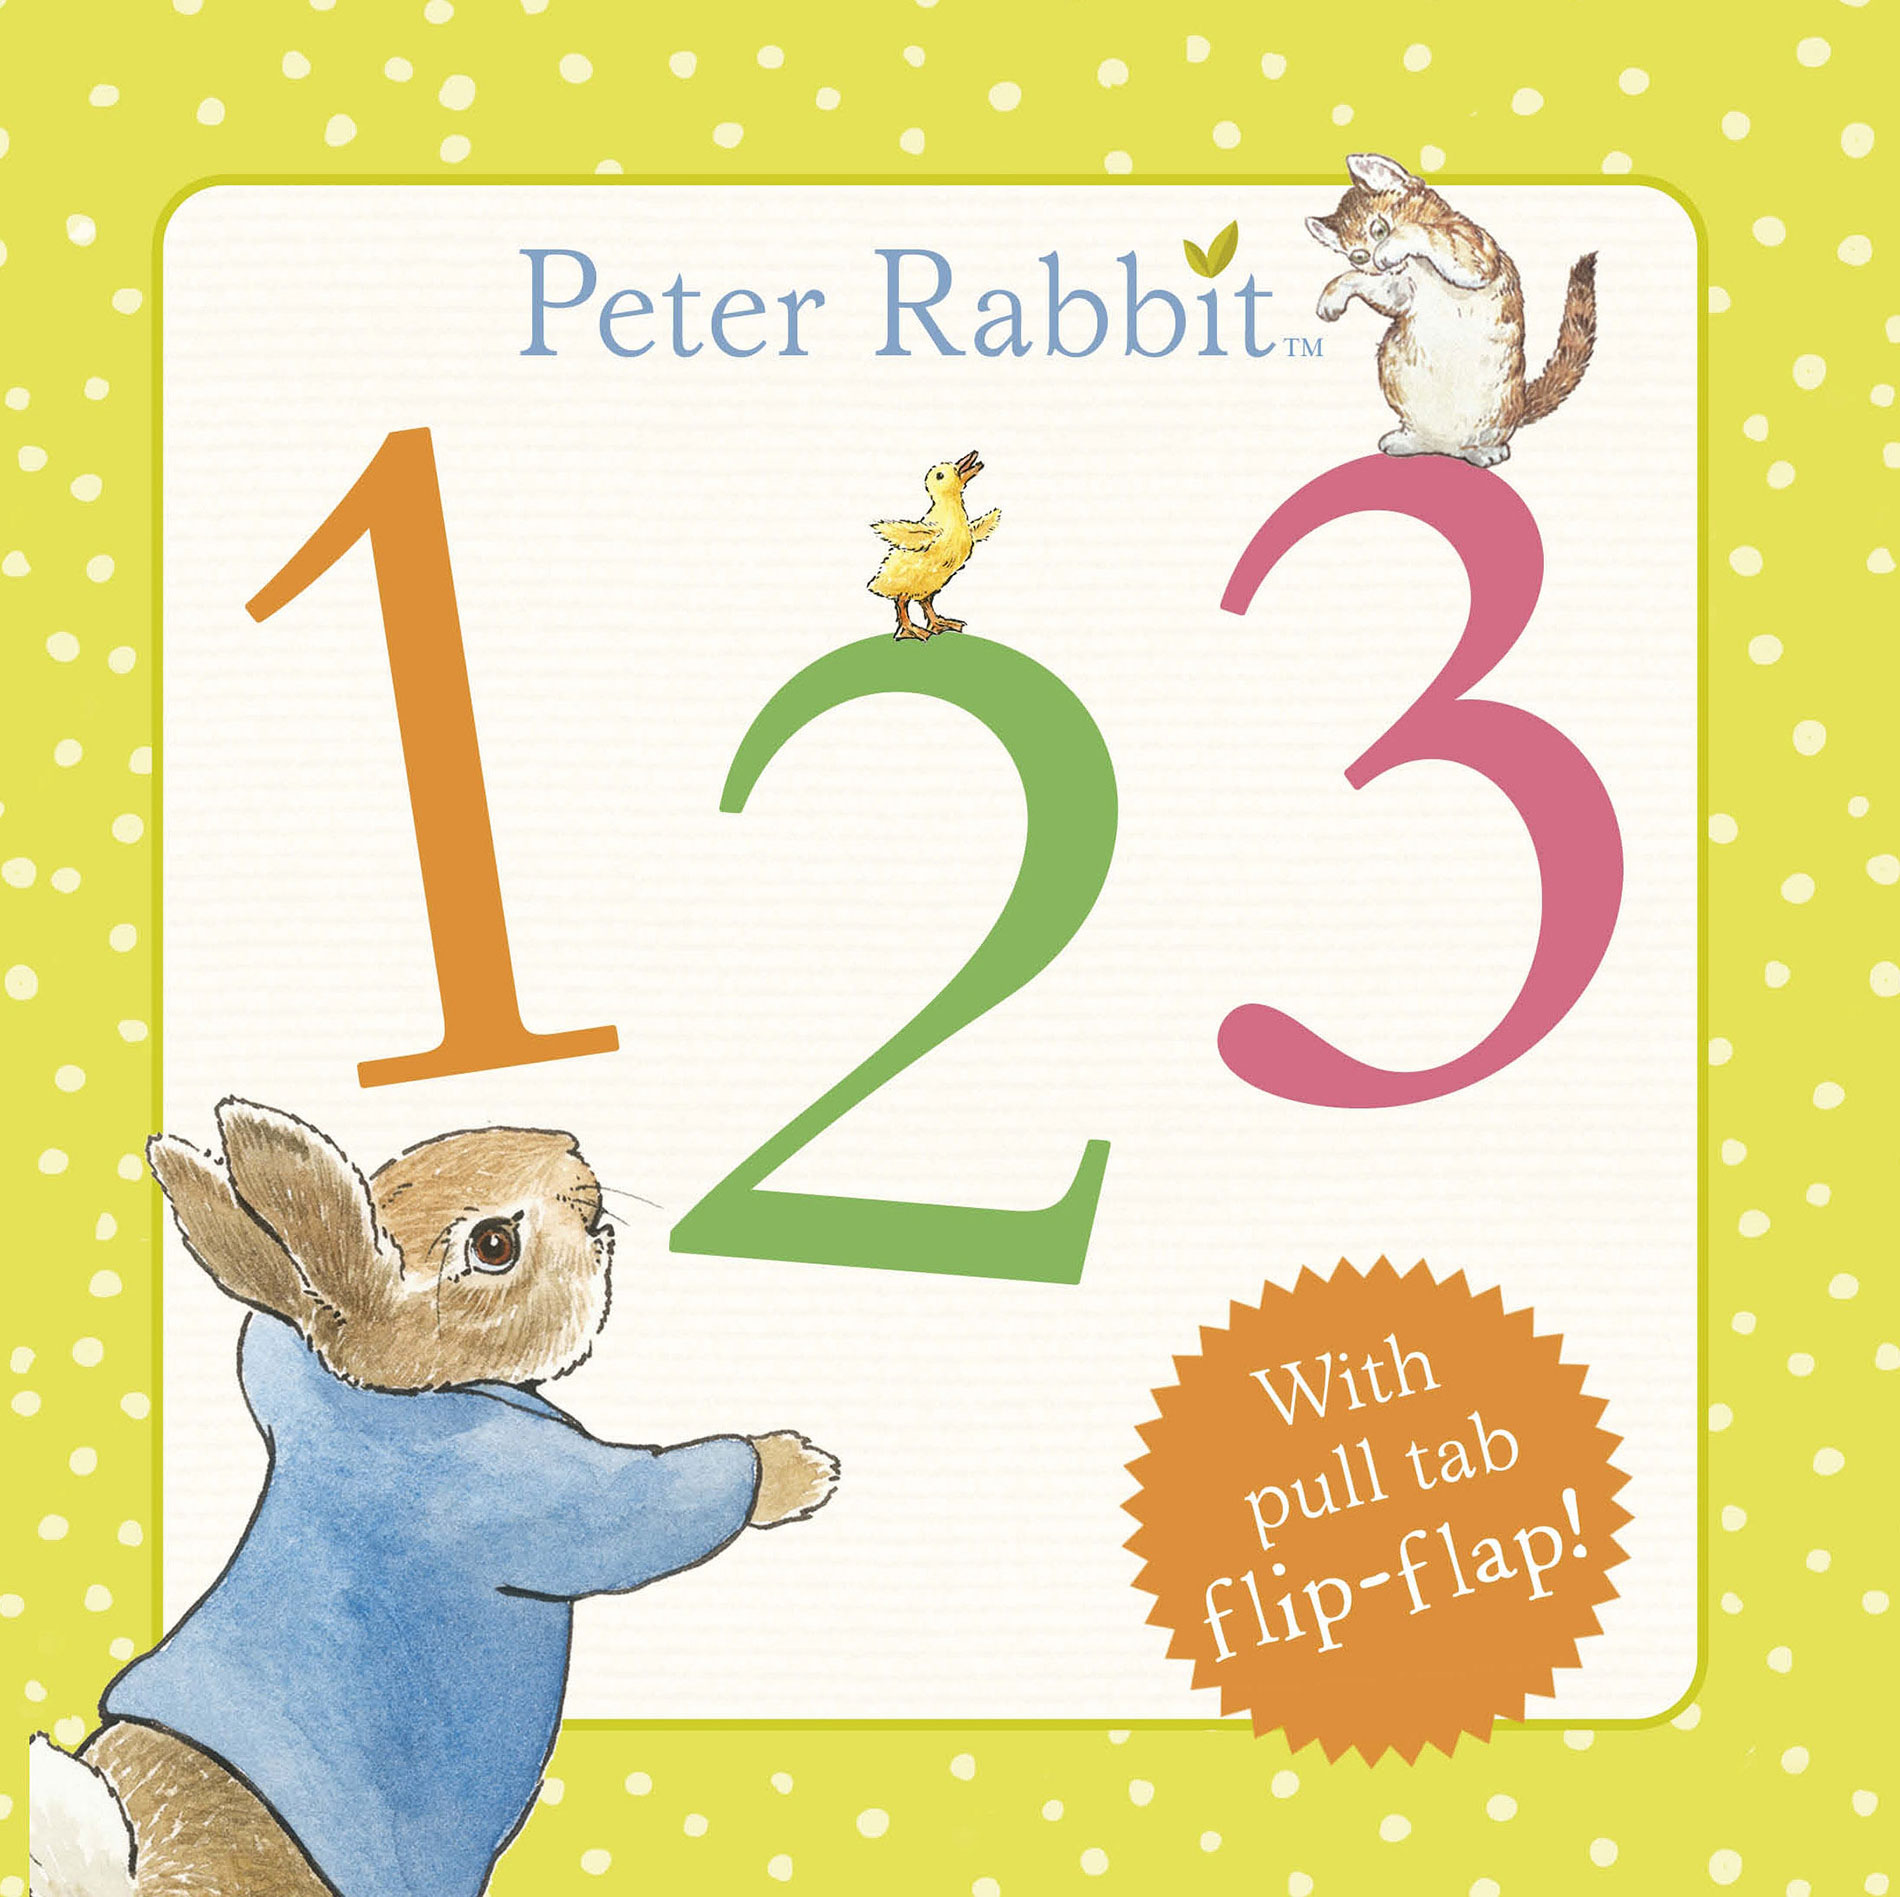 Rainbow Designs PETER RABBIT 123 BOOK Baby/Toddler Educational Toy/Gift - BN